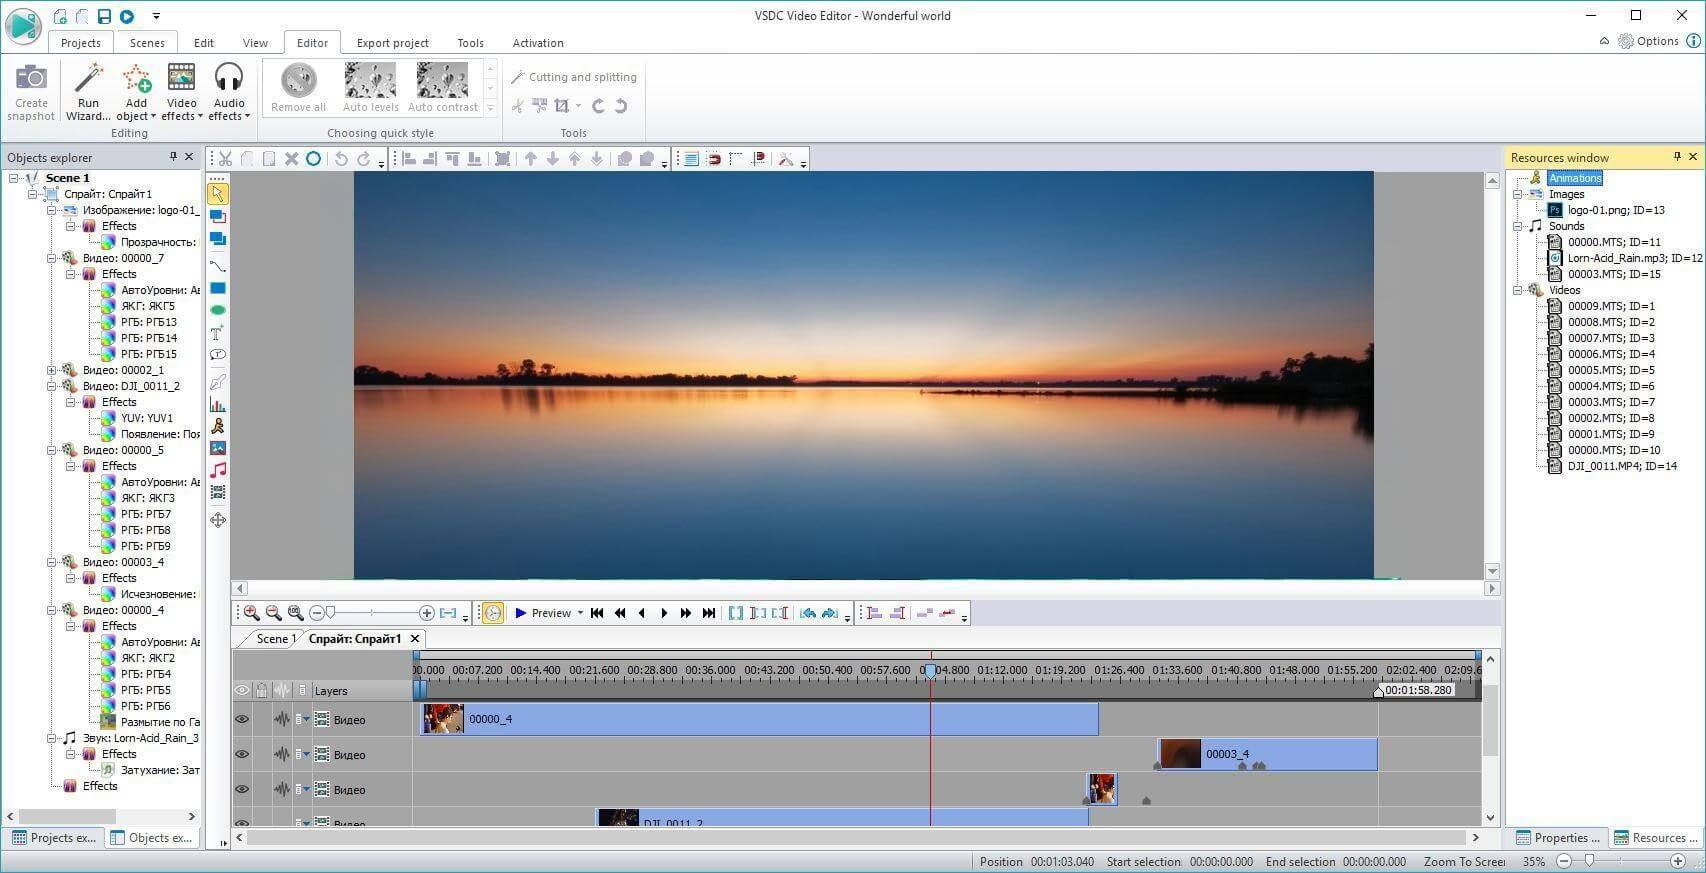 VSDC Video Editor Screenshot